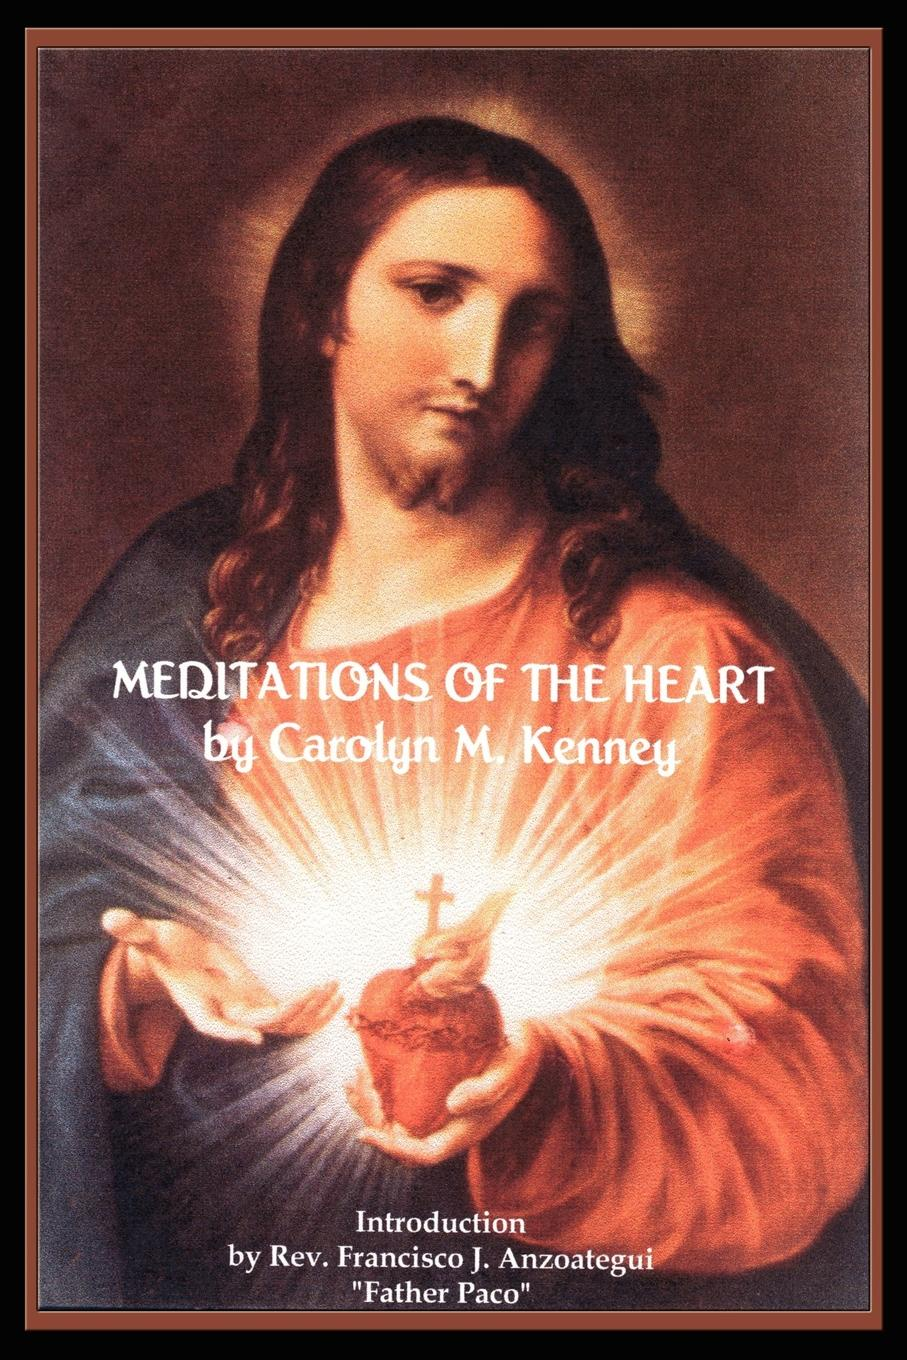 Carolyn M. Kenney Meditations of the Heart